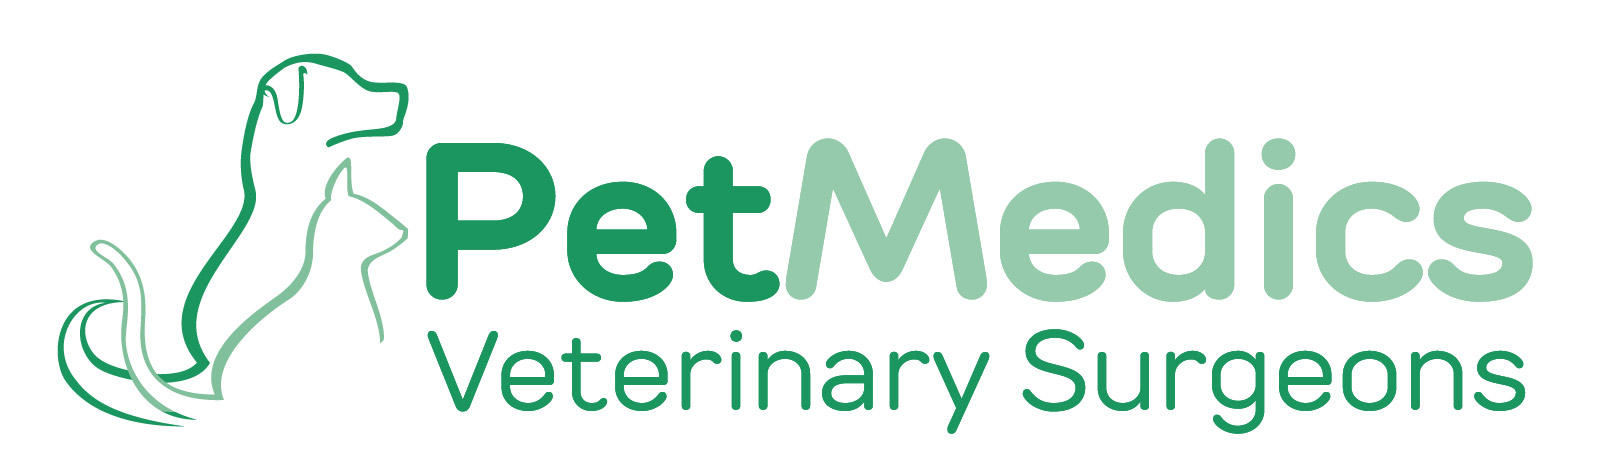 PetMedics Veterinary Surgeons